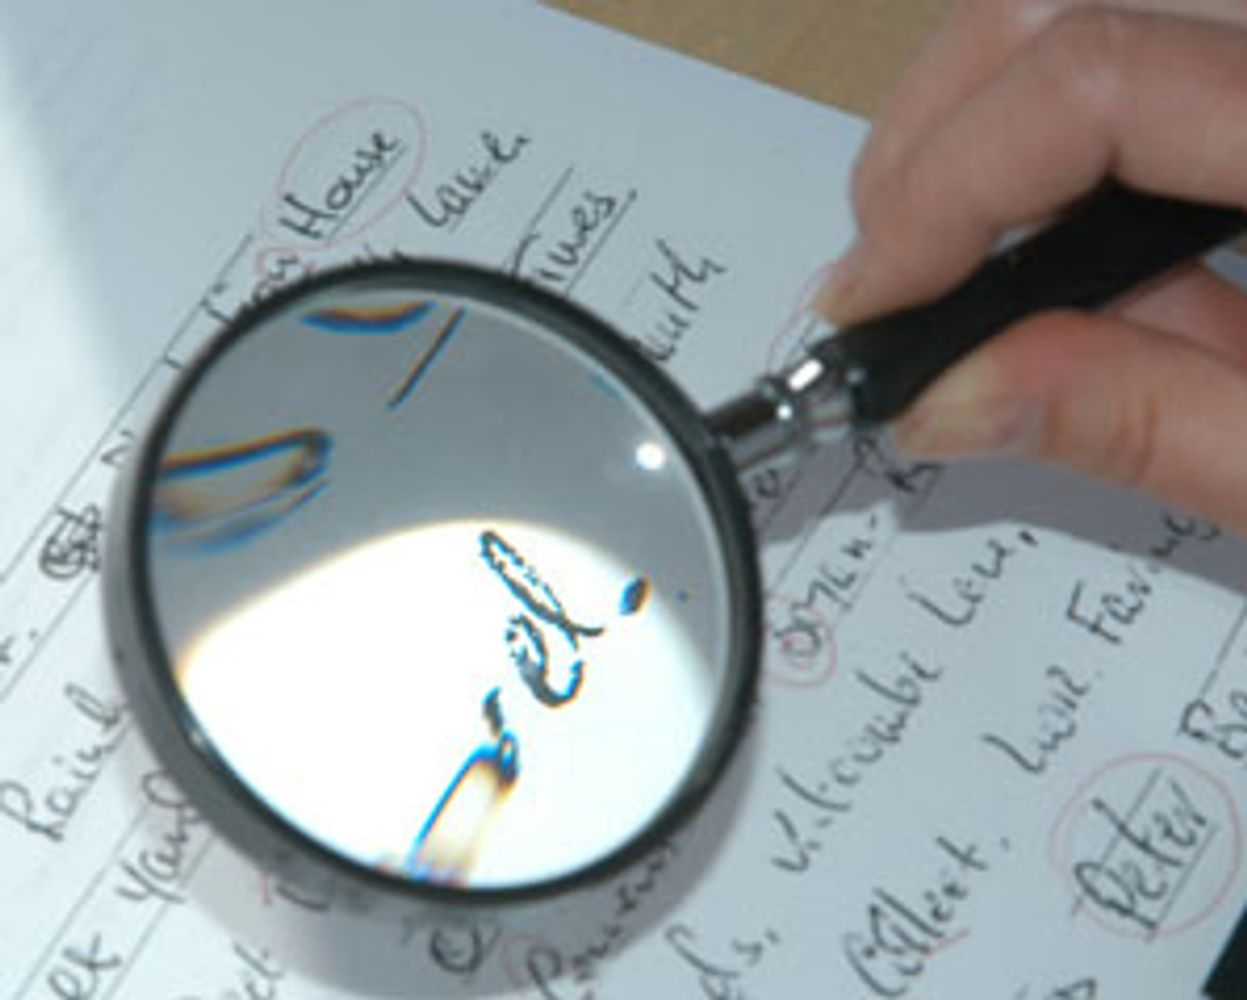 The Handwriting Examiner Forged Document Document Analysis